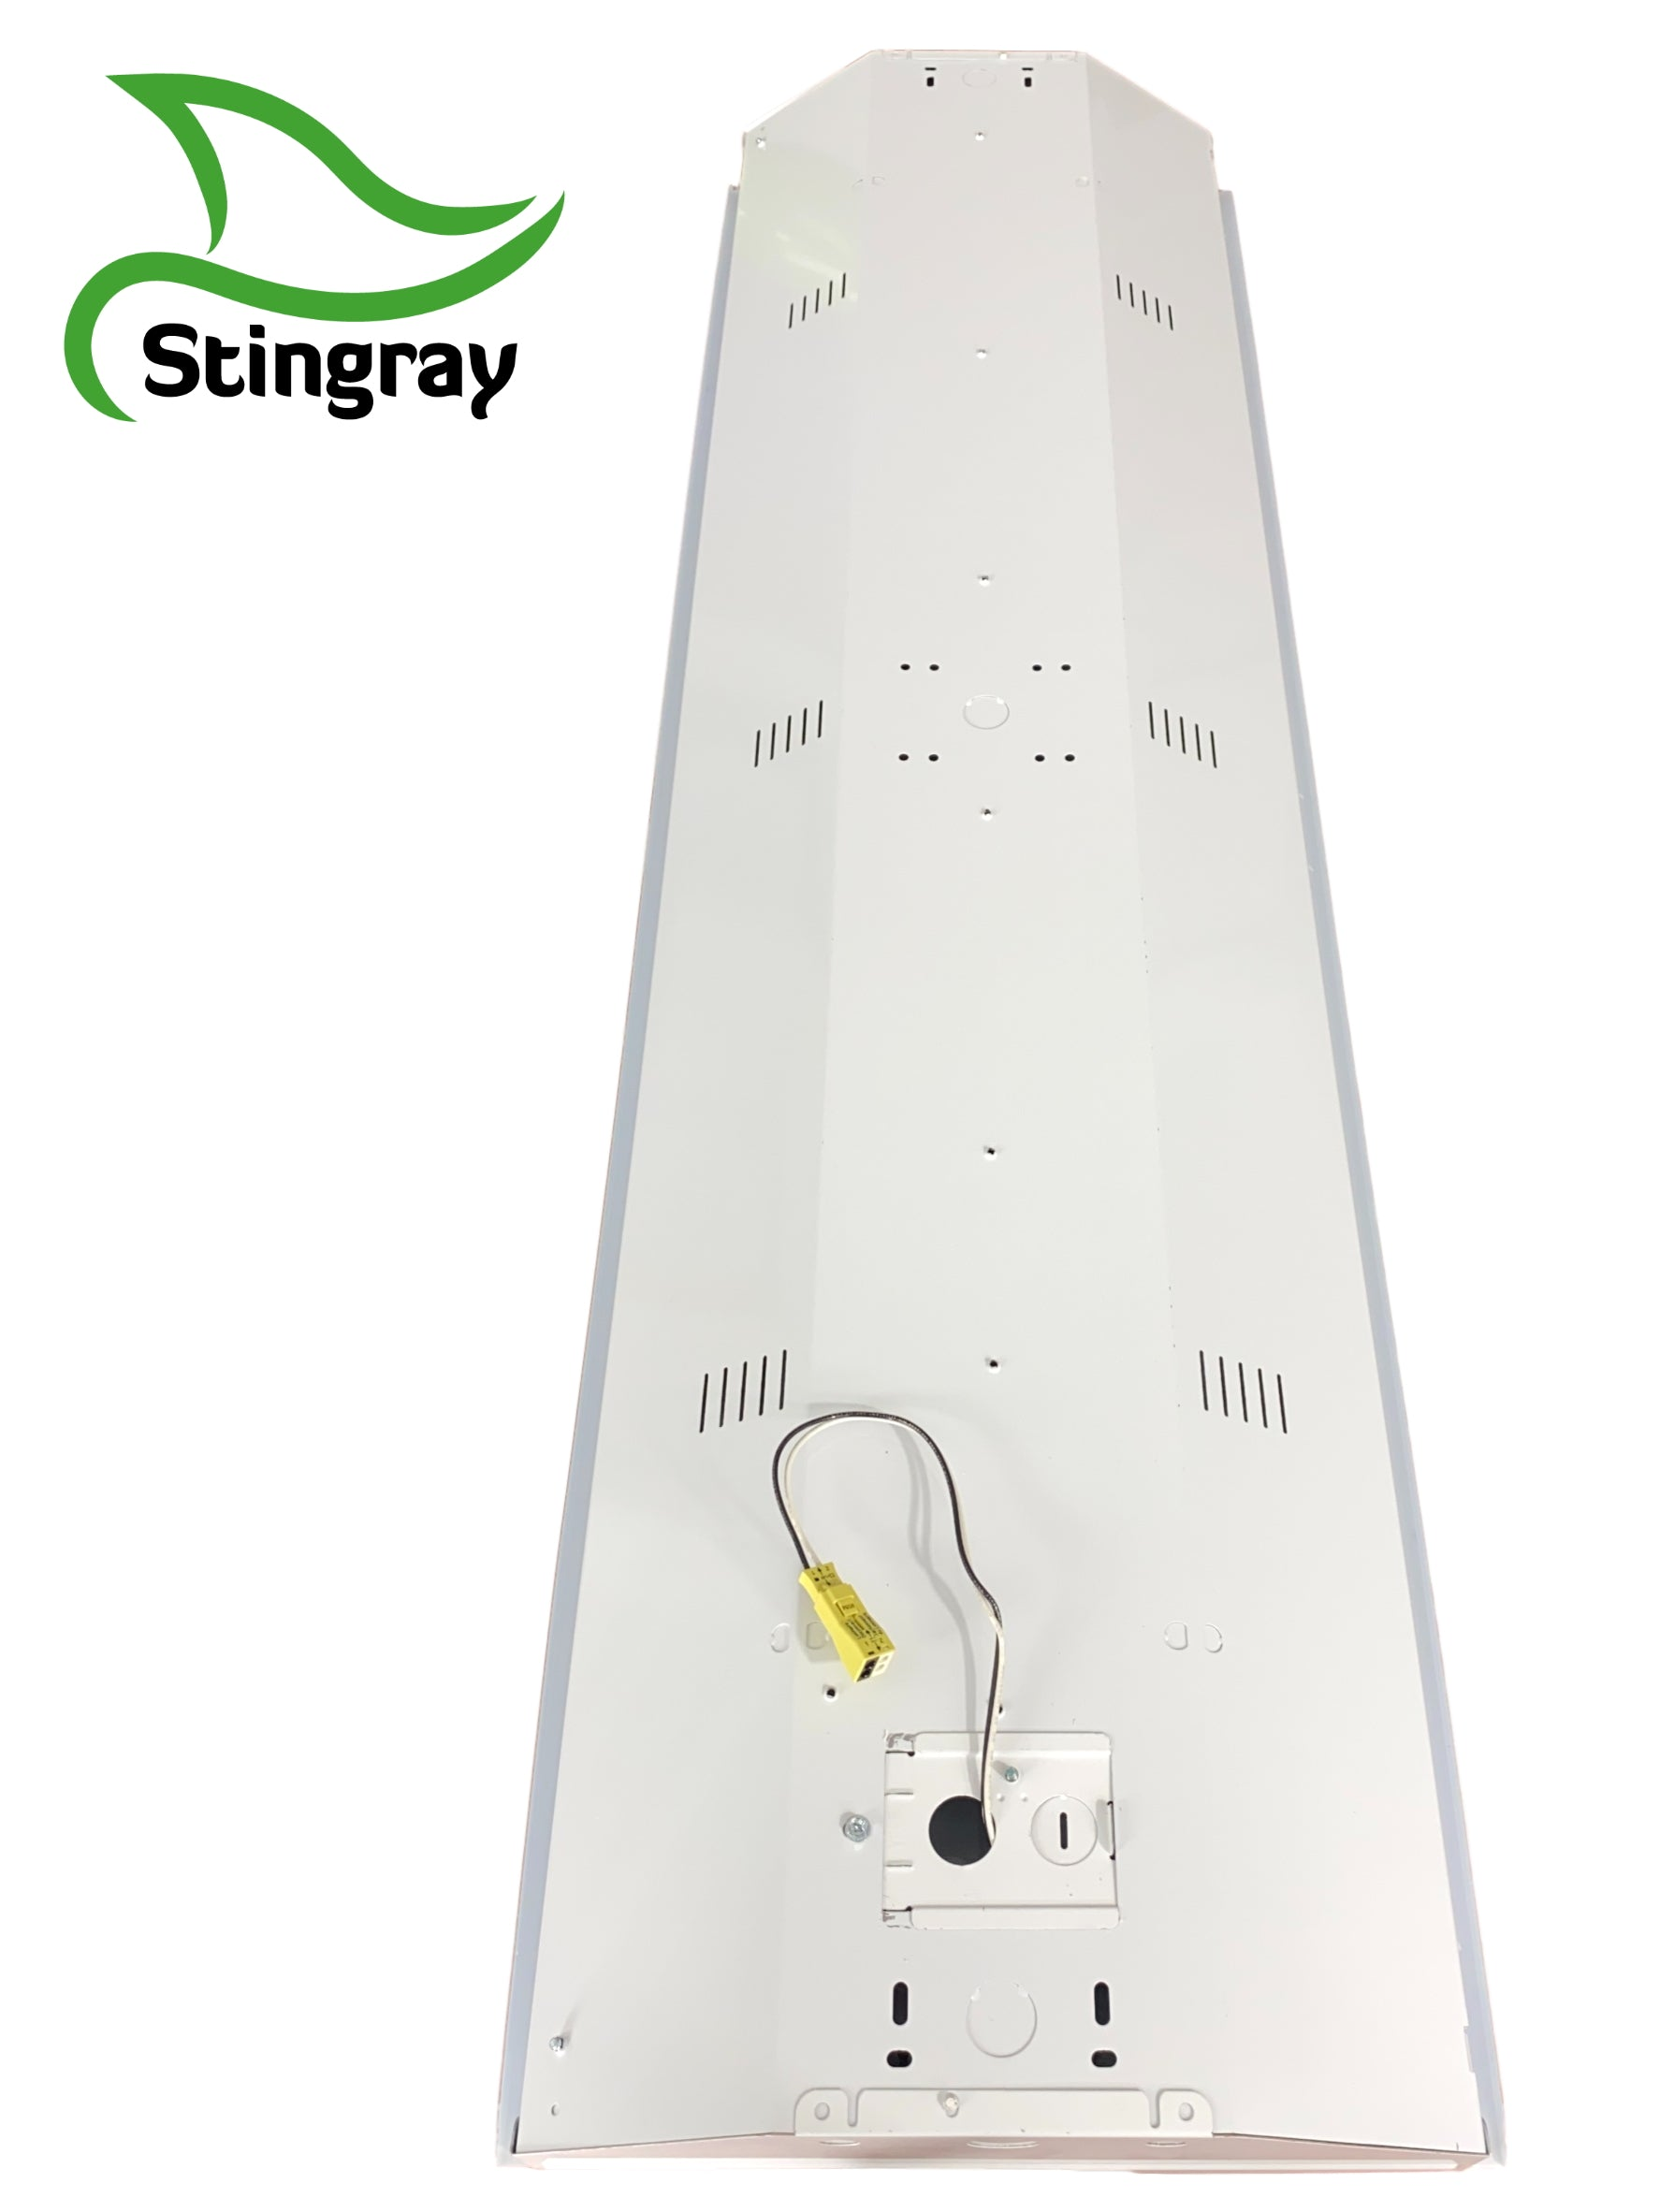 LED 6 Lamp T8 STINGRAY 6XL Highbay Fixture 132 Watts Clear